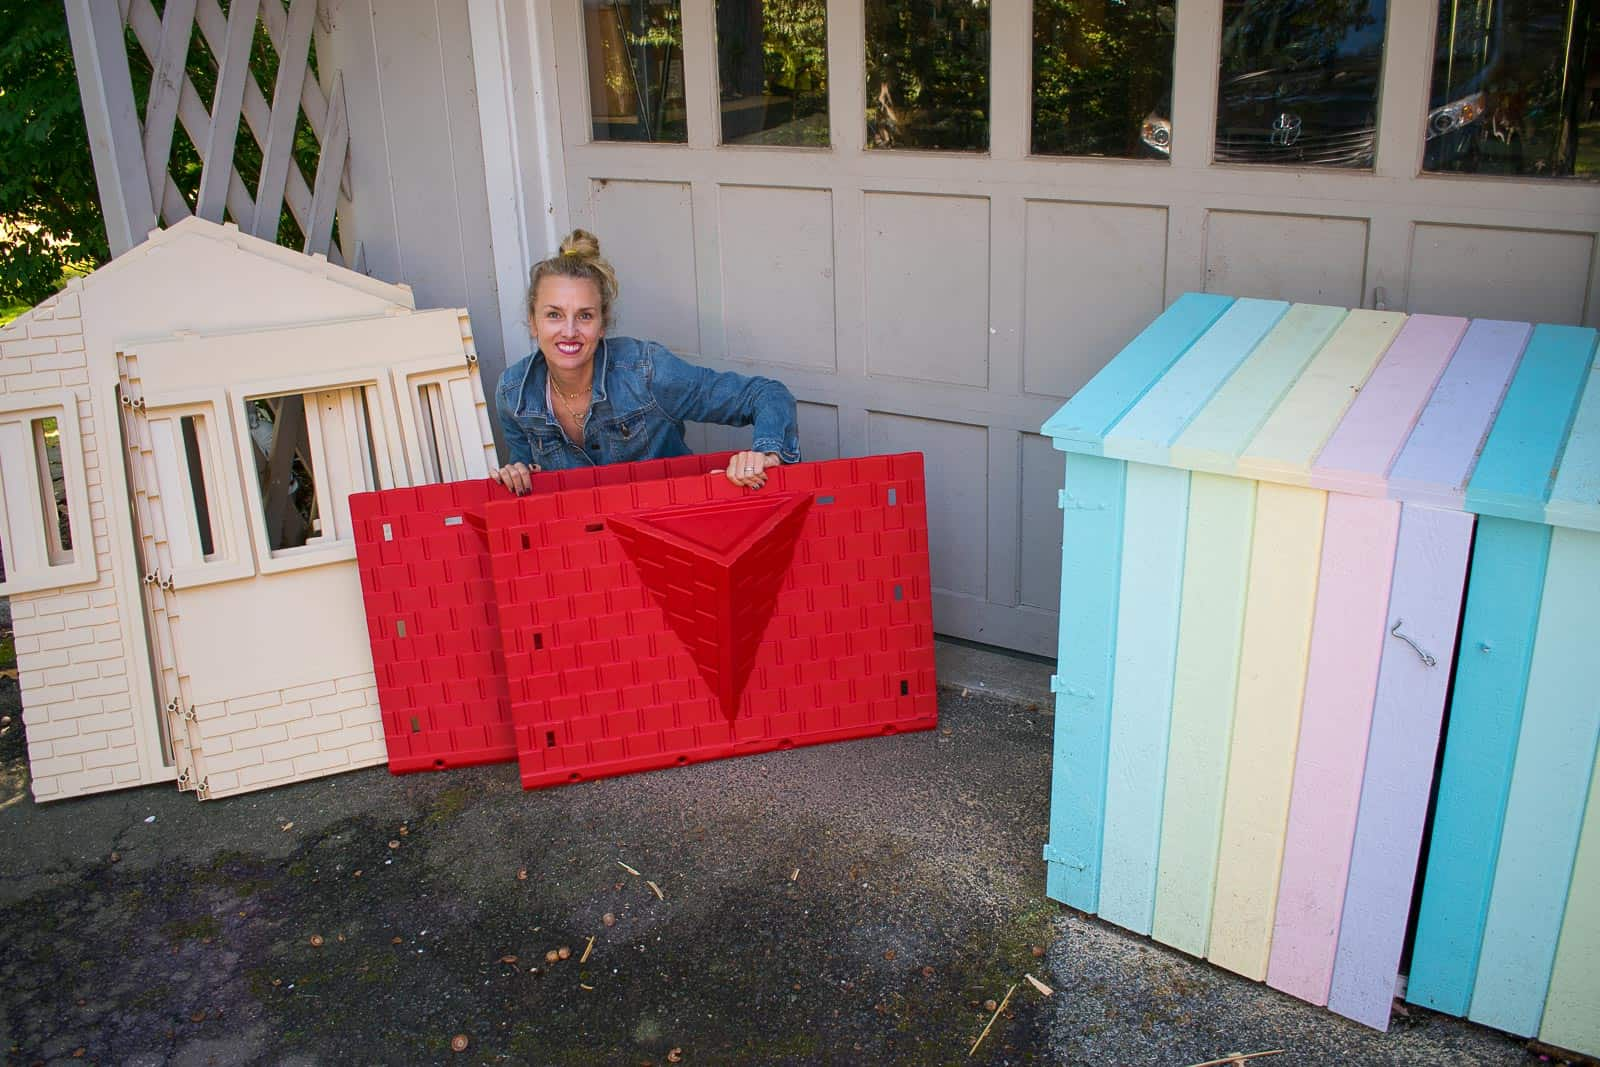 charlotte with little tikes playhouse